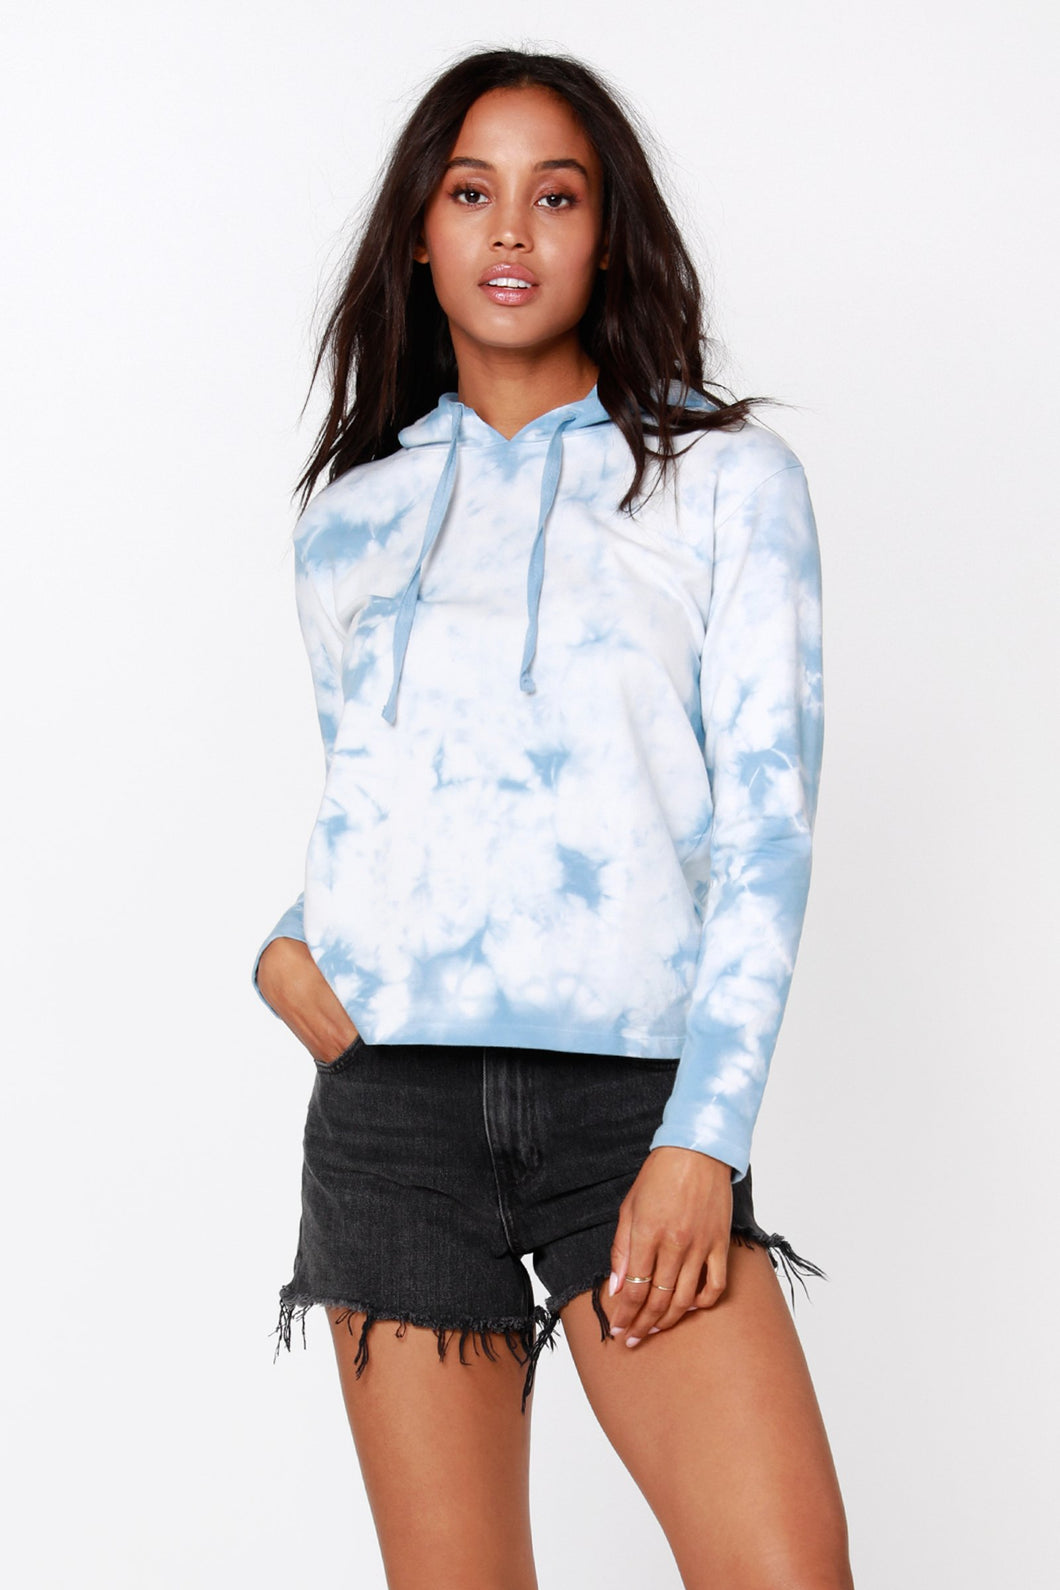 Tie Dye Cropped Hoodie - civvies - indianapolis clothing boutique